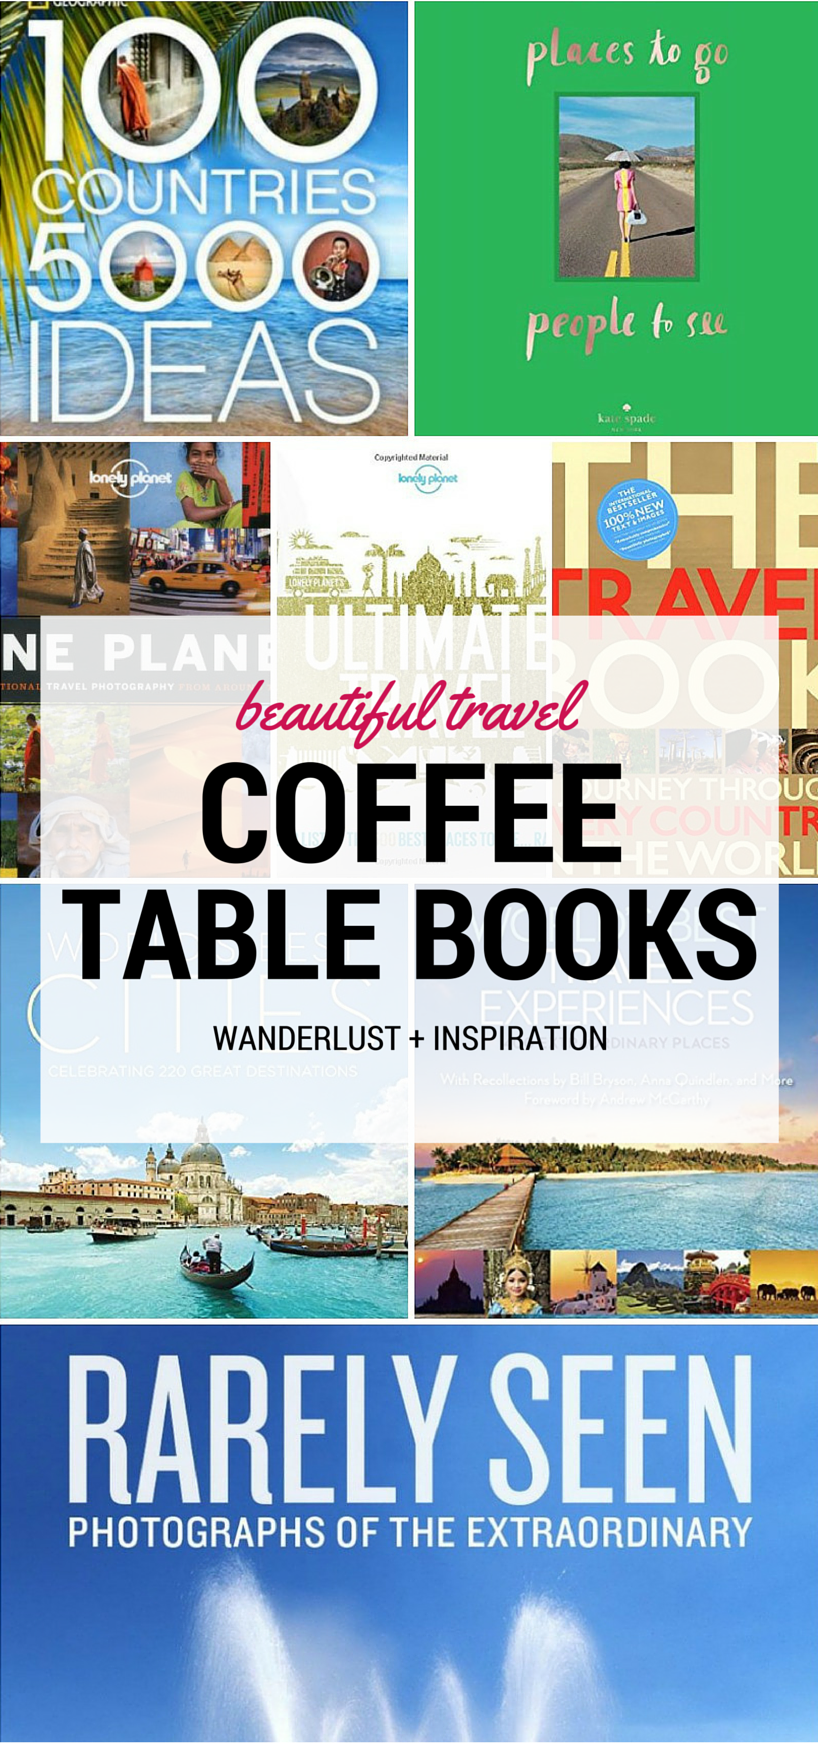 16 Beautiful Travel Coffee Table Books Every Wanderluster Should Own Coffee Travel Travel Book Travel